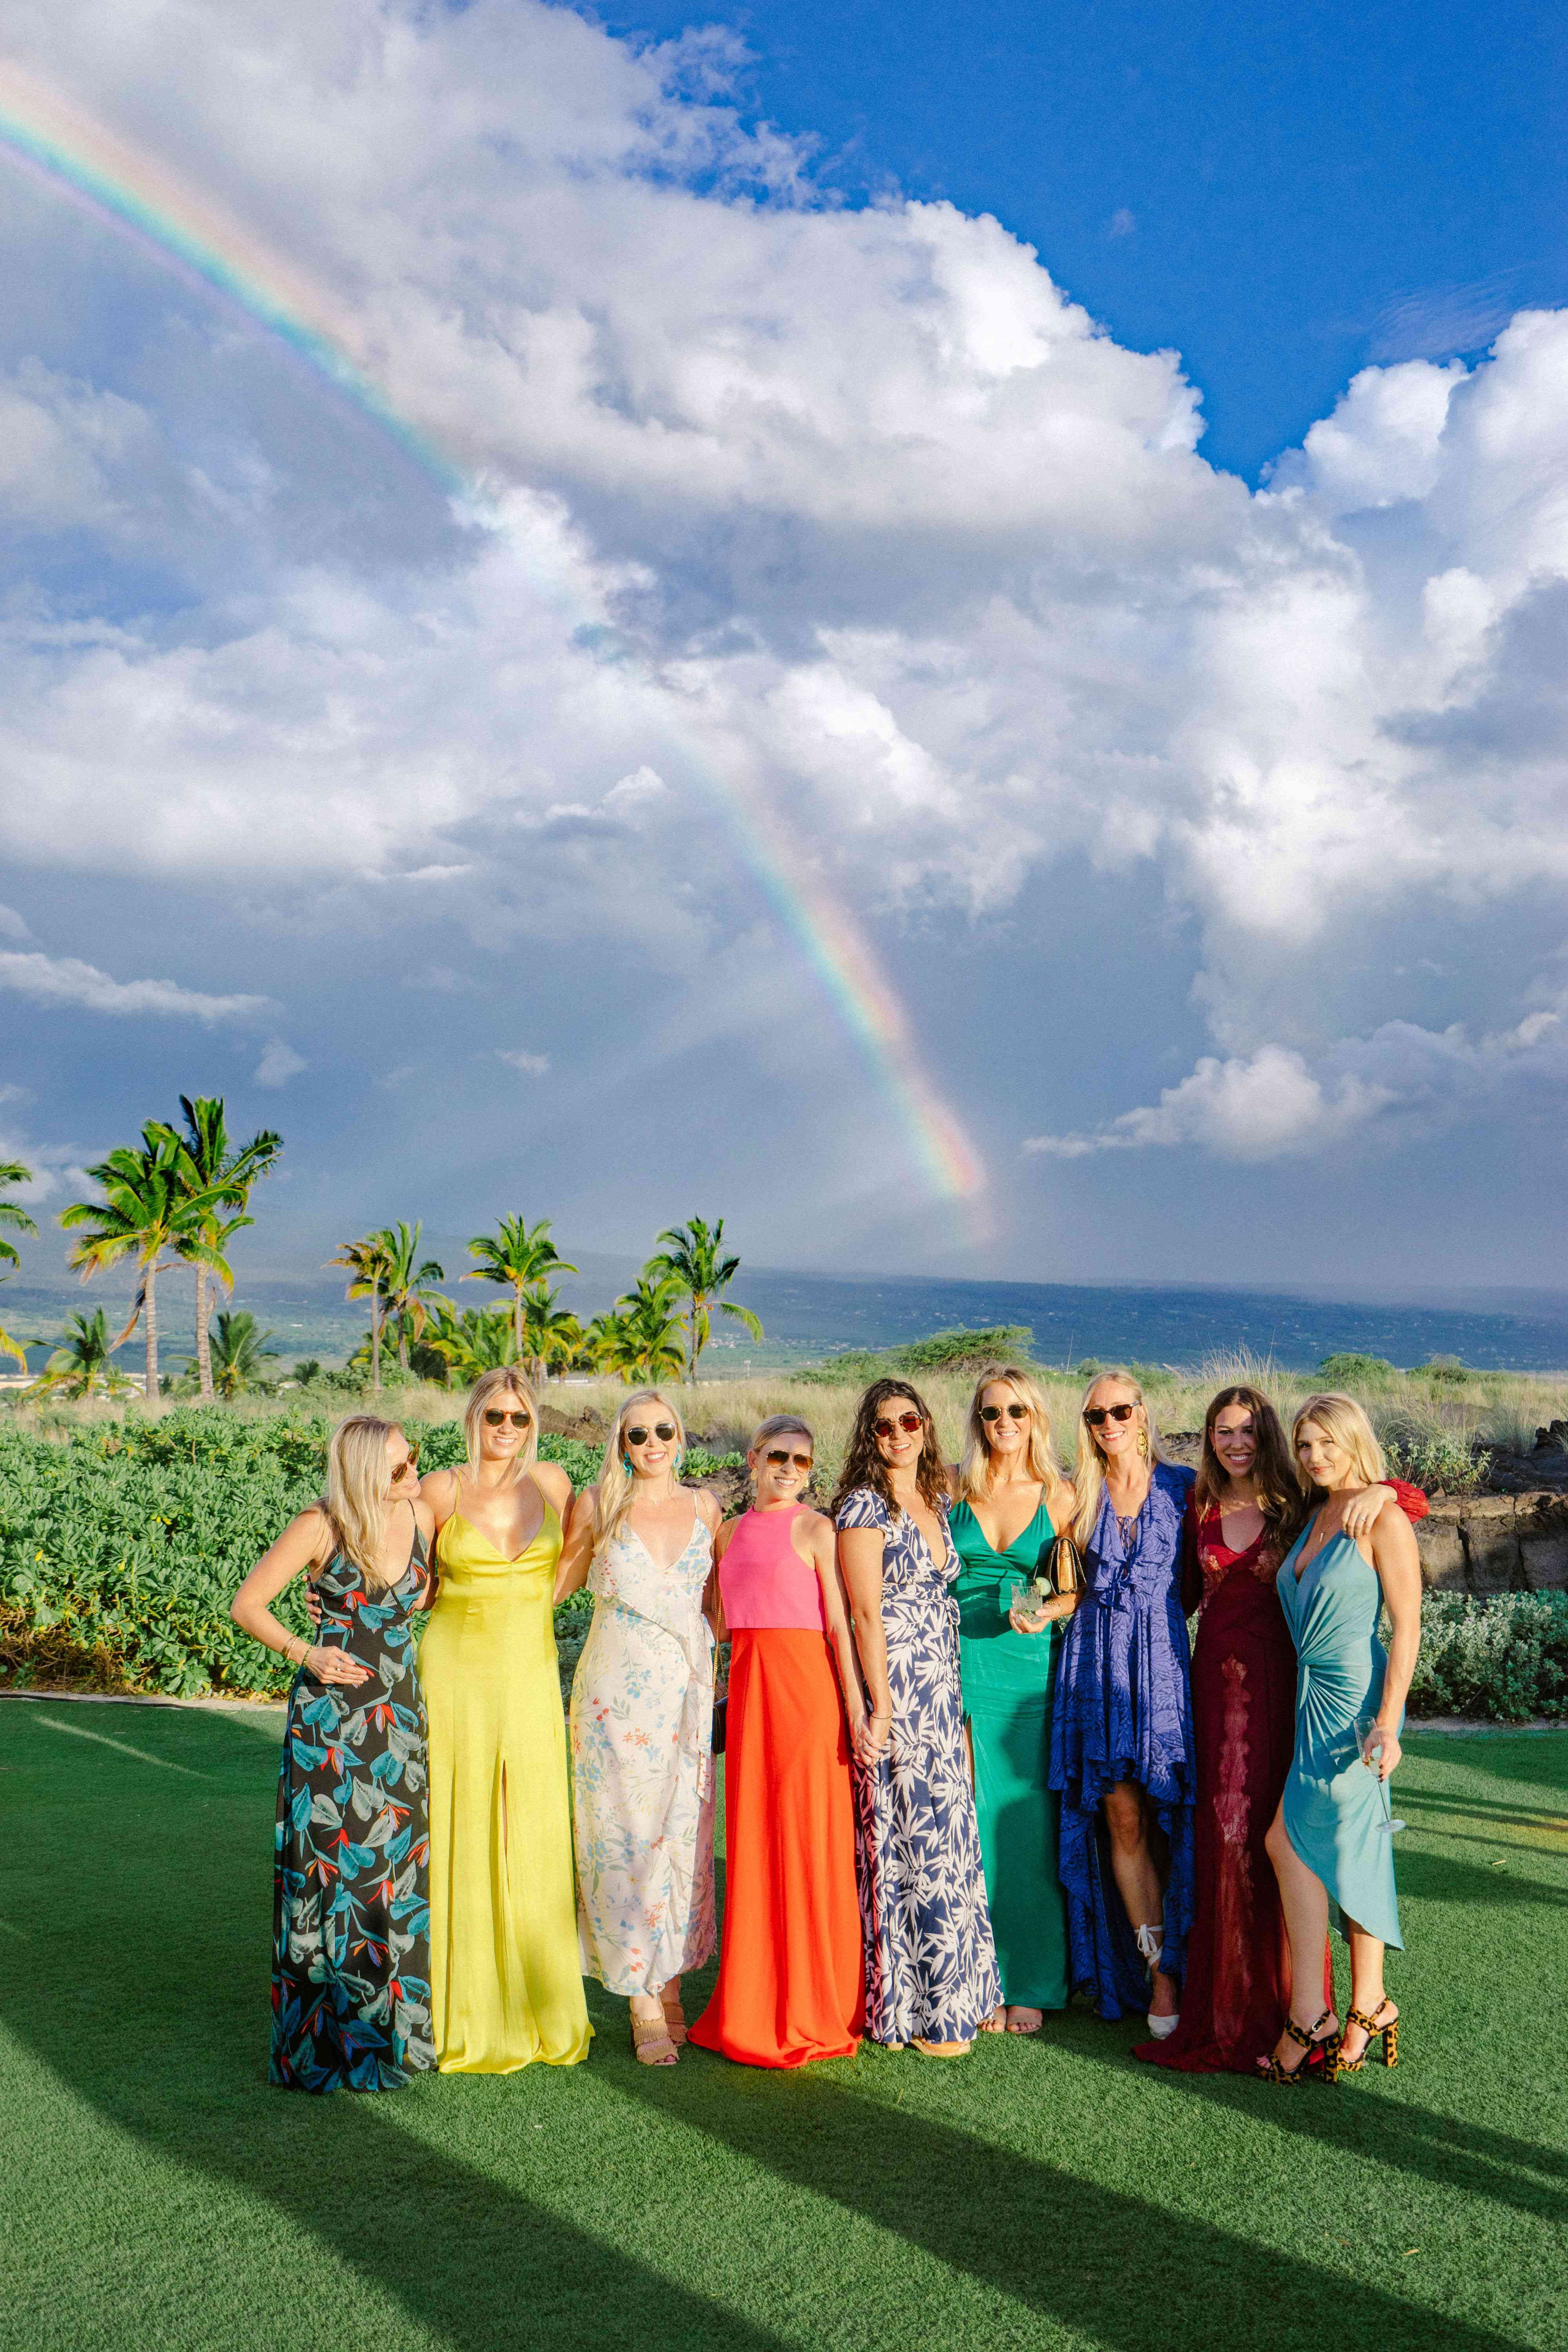 Wedding guests pose in front of the rainbow